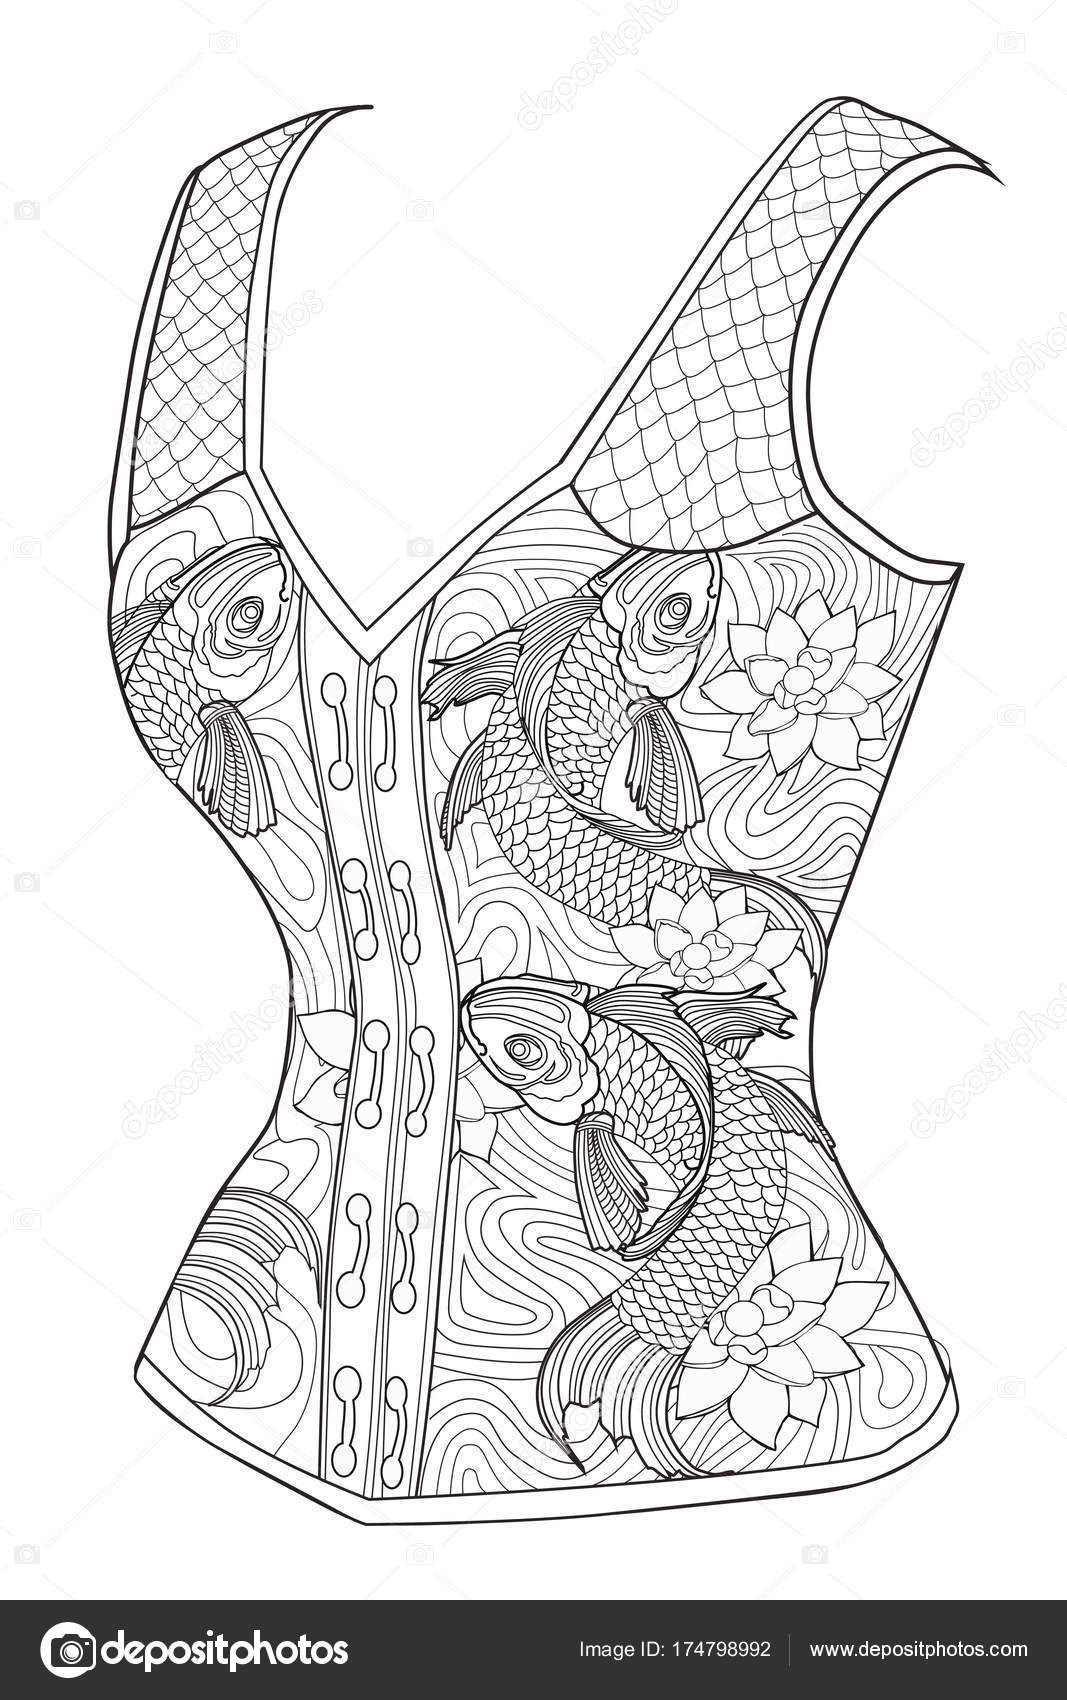 Coloring page for adults. Corset with fish. Art Therapy. — Stock ...